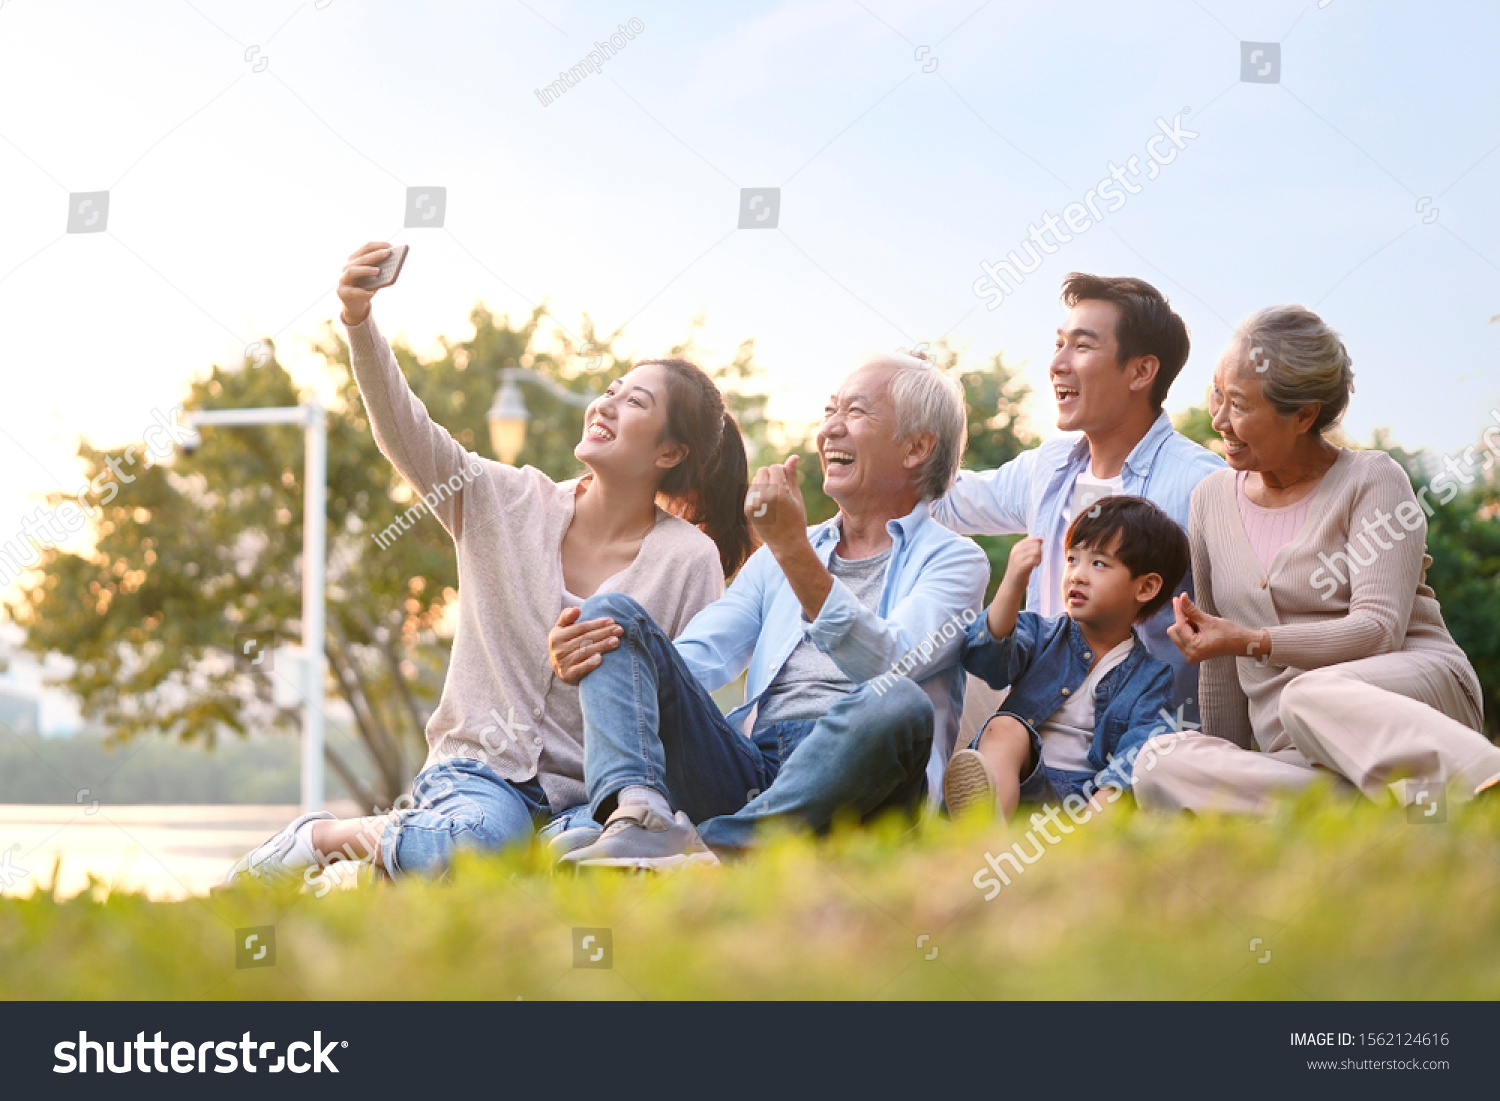 three generation happy asian family sitting on grass taking a selfie using mobile phone outdoors in park #1562124616